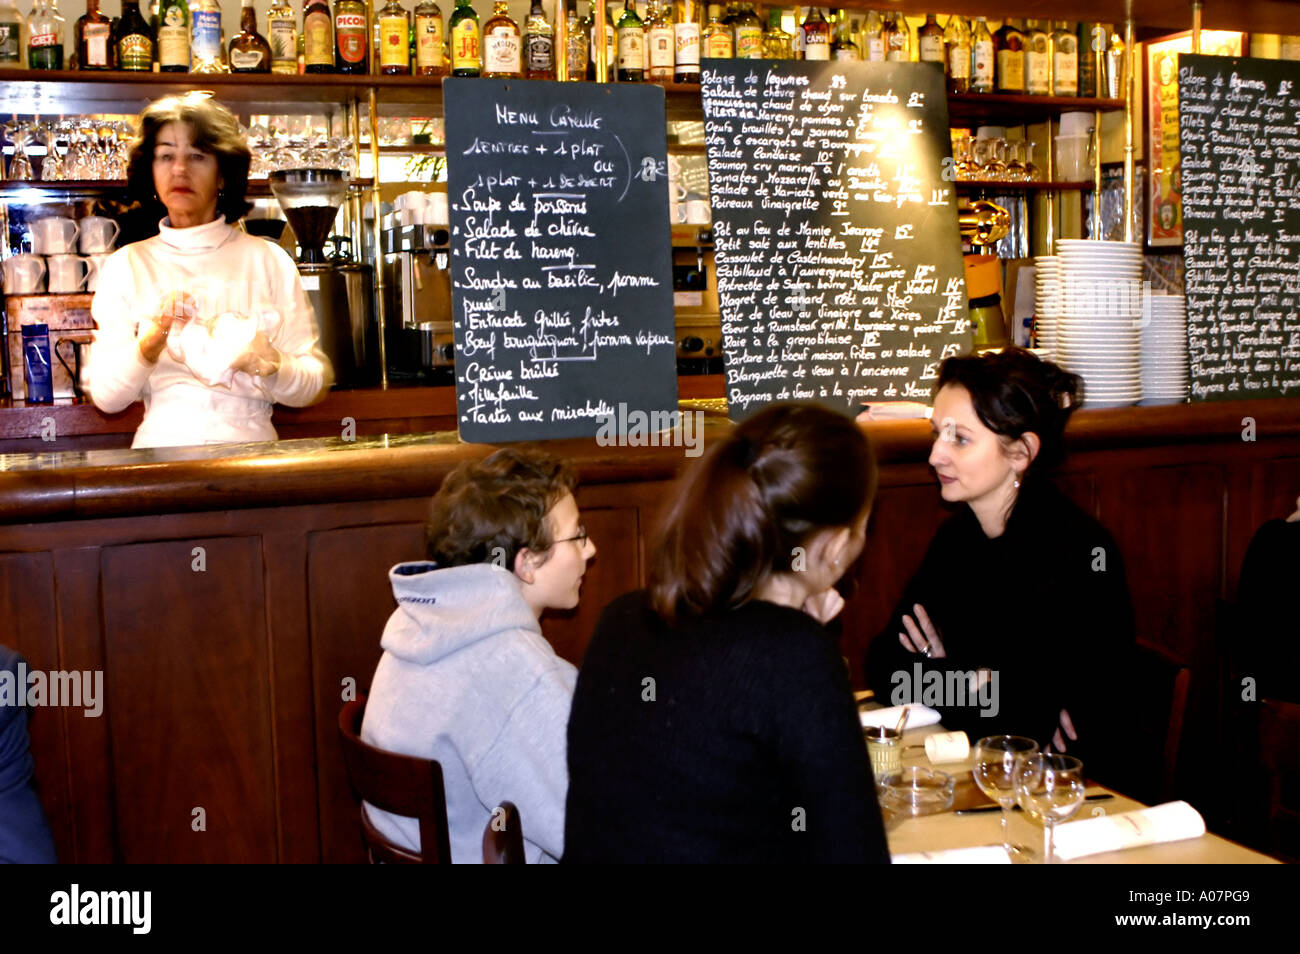 PARIS France People Family Sharing Meals Eating In French Bistro Restaurant Camille Blackboard Menus On Display Marais